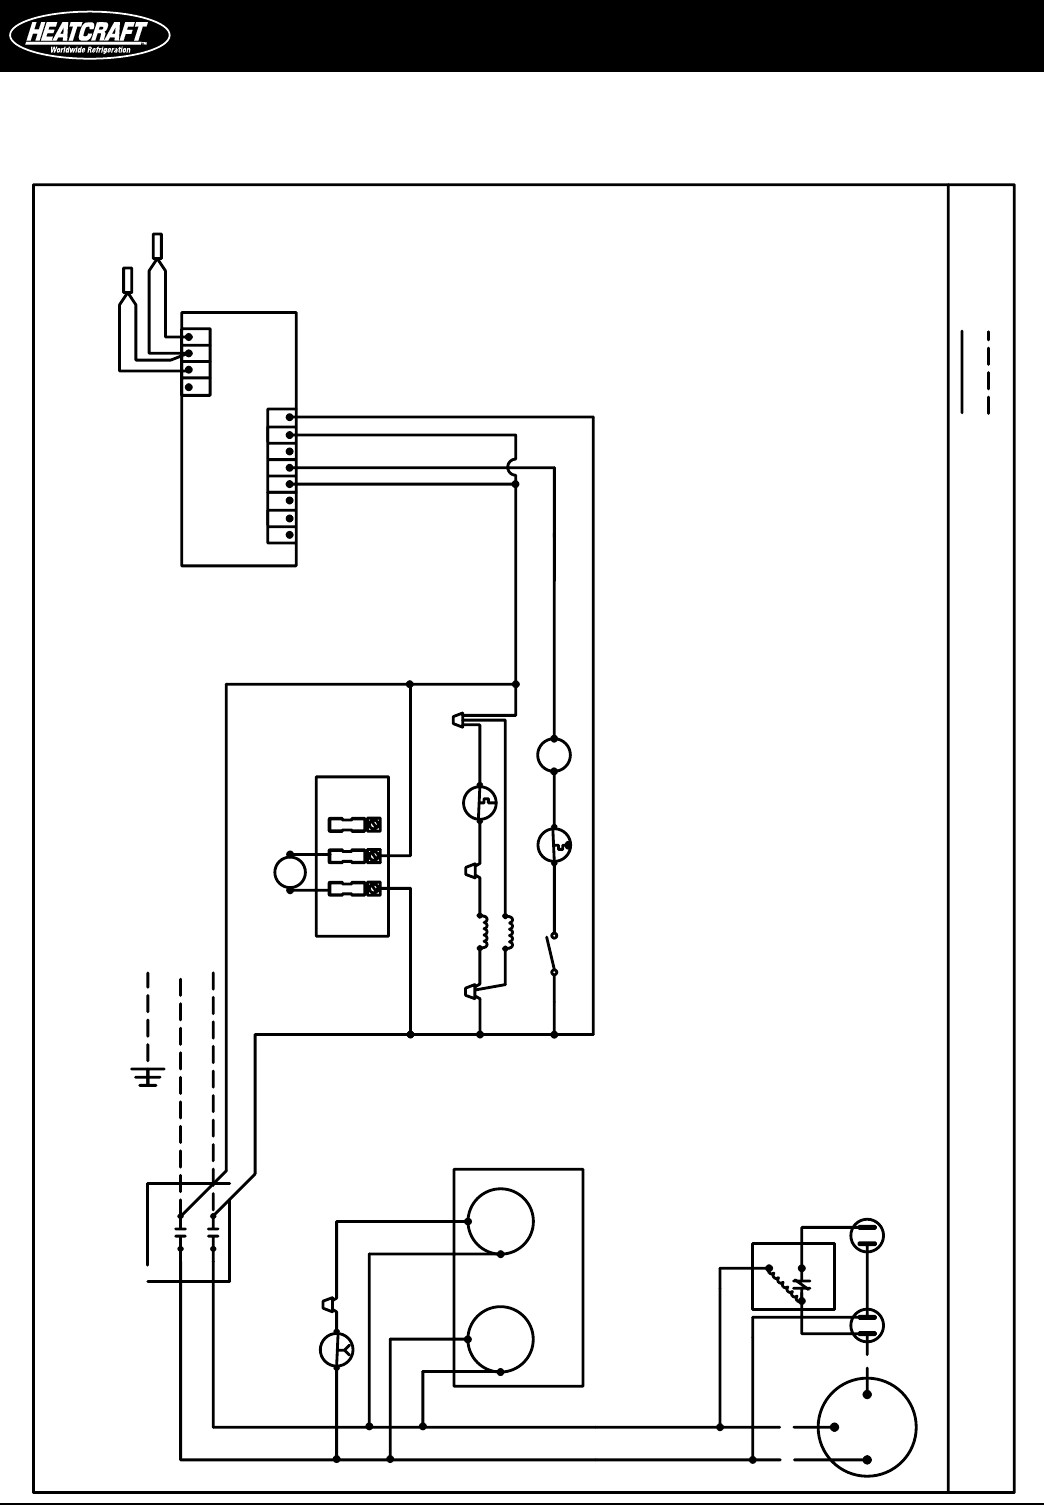 heatcraft evaporator wiring diagram unique